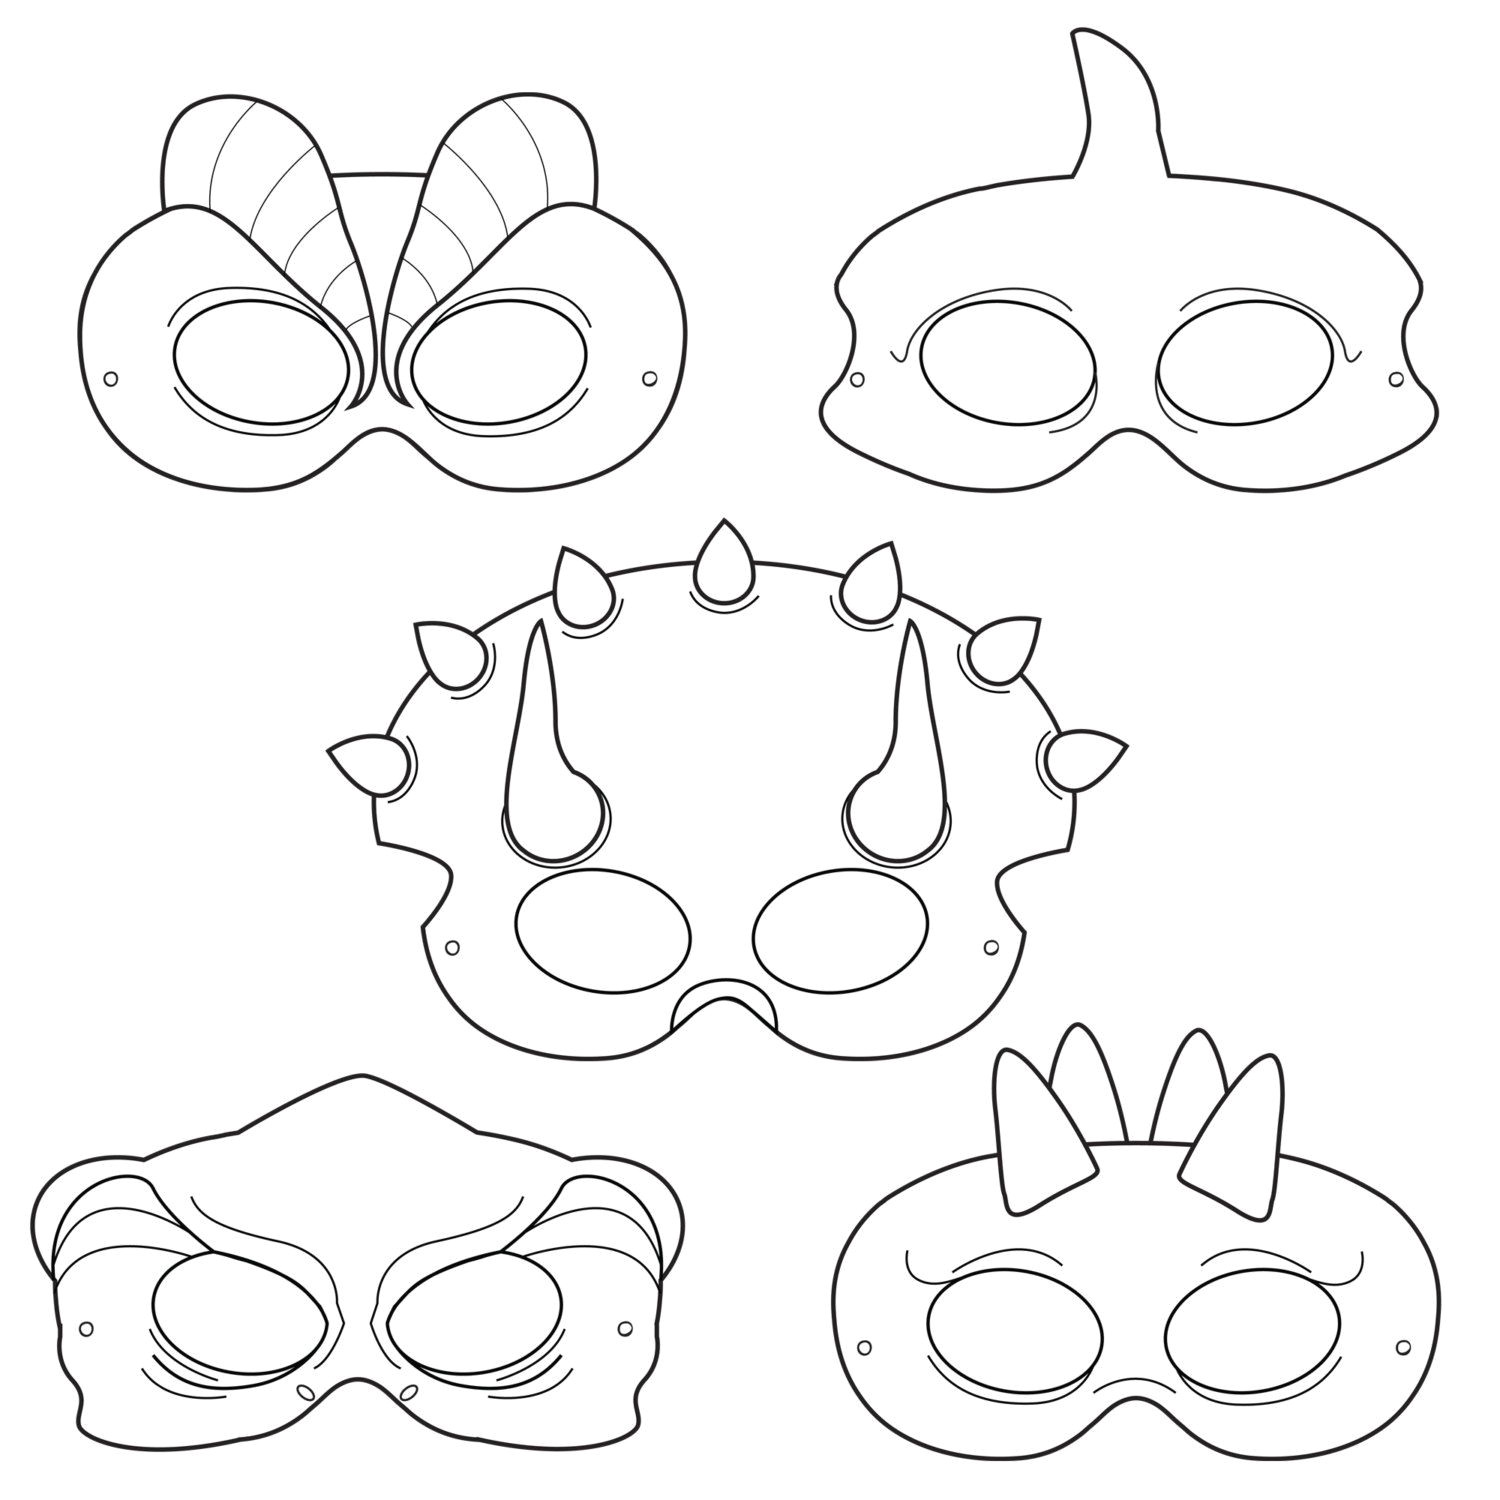 Dinosaur Mask Template Free Dinosaurs Printable Coloring Masks Dinosaur by